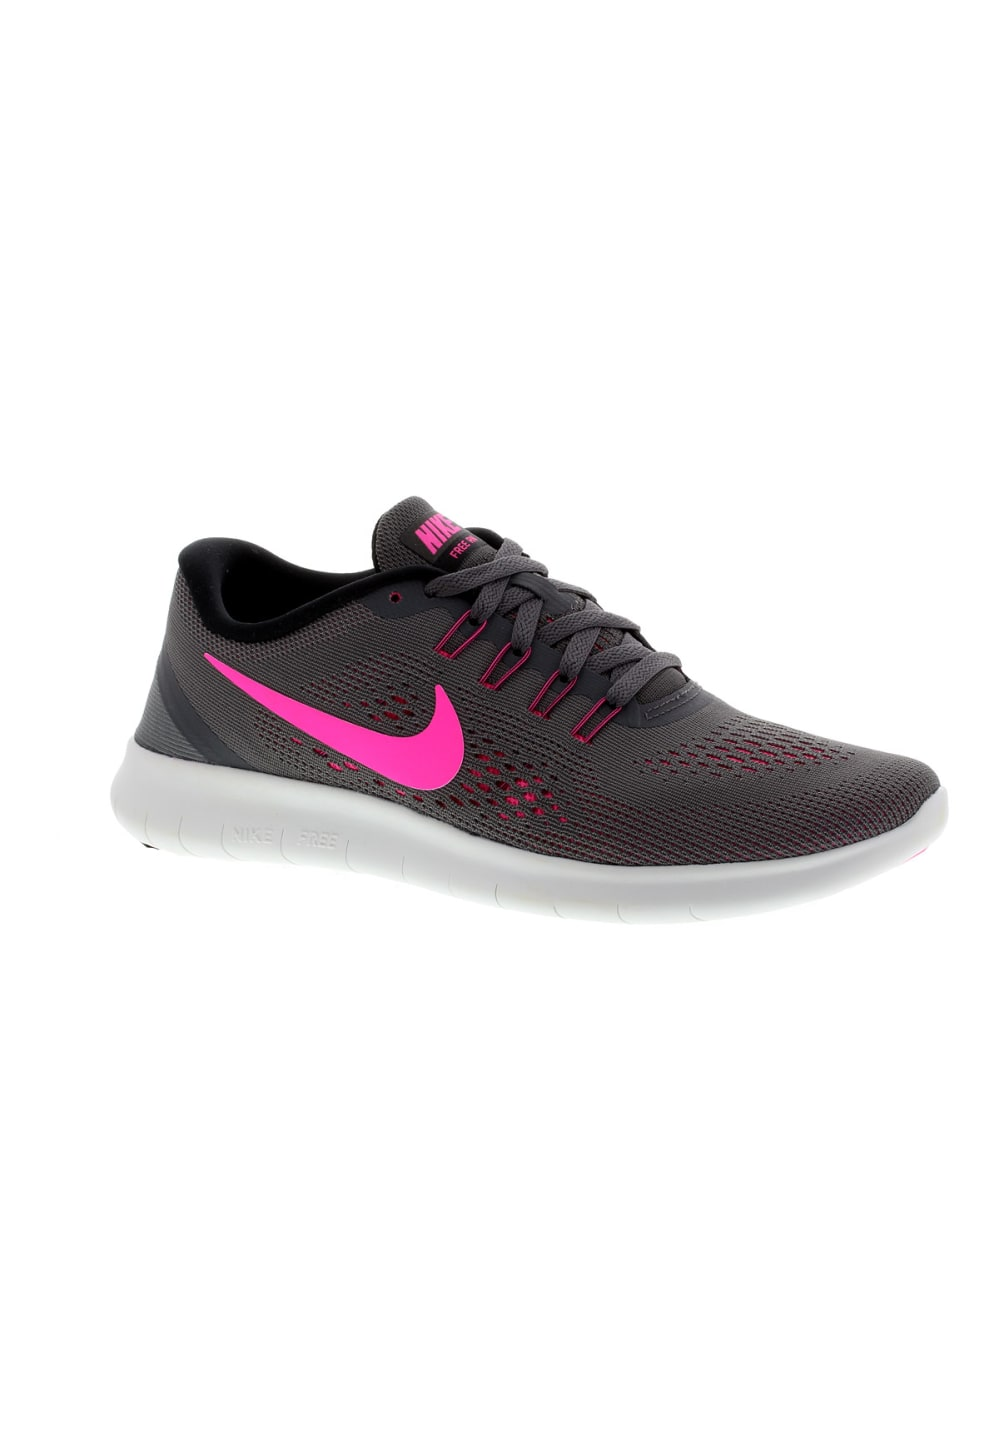 100% authentic 7d13f 929a5 Next. -60%. This product is currently out of stock. Nike. Free Run - Running  shoes for Women